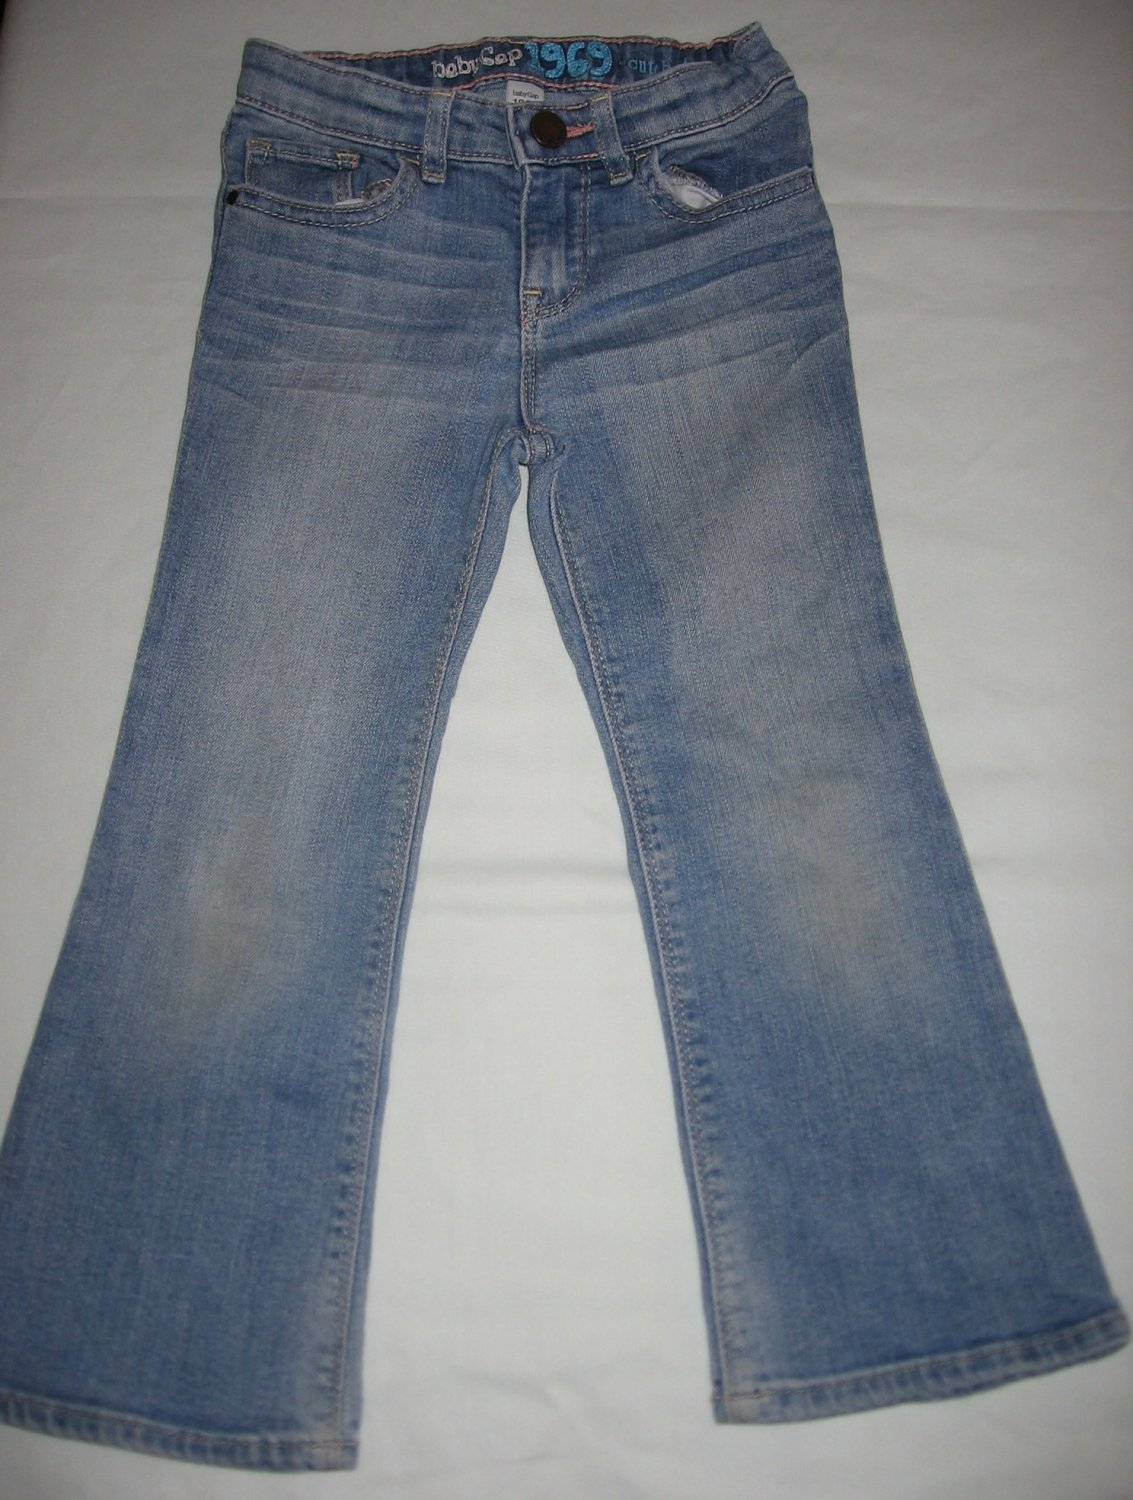 Find great deals on eBay for baby gap jeans. Shop with confidence.